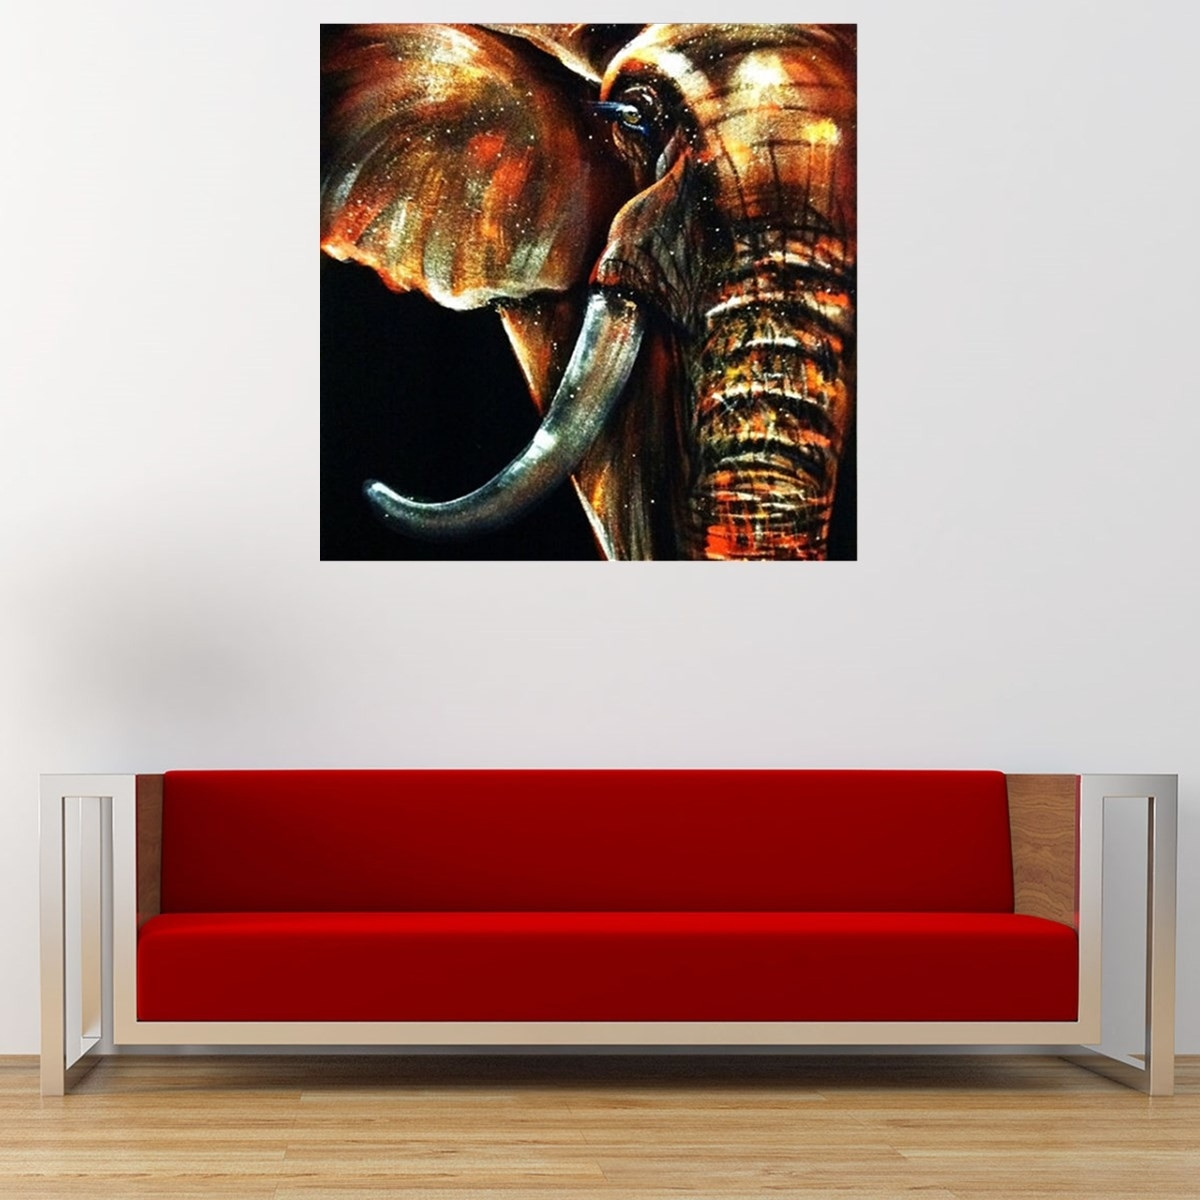 50X50Cm Modern Abstract Huge Elephant Wall Art Decor Oil Painting On With Regard To Best And Newest Elephant Wall Art (View 2 of 15)